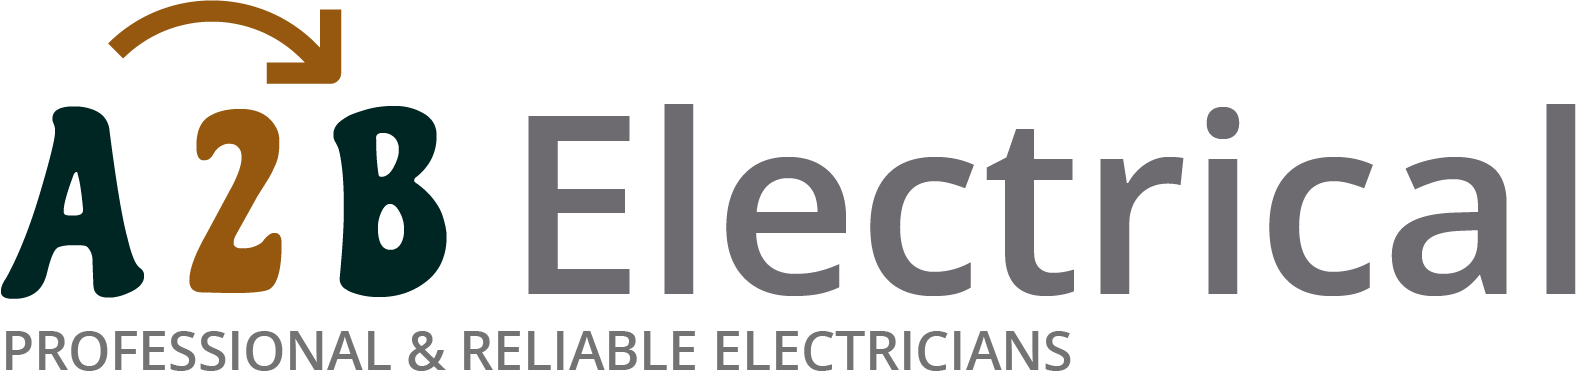 If you have electrical wiring problems in Forest Hill, we can provide an electrician to have a look for you.